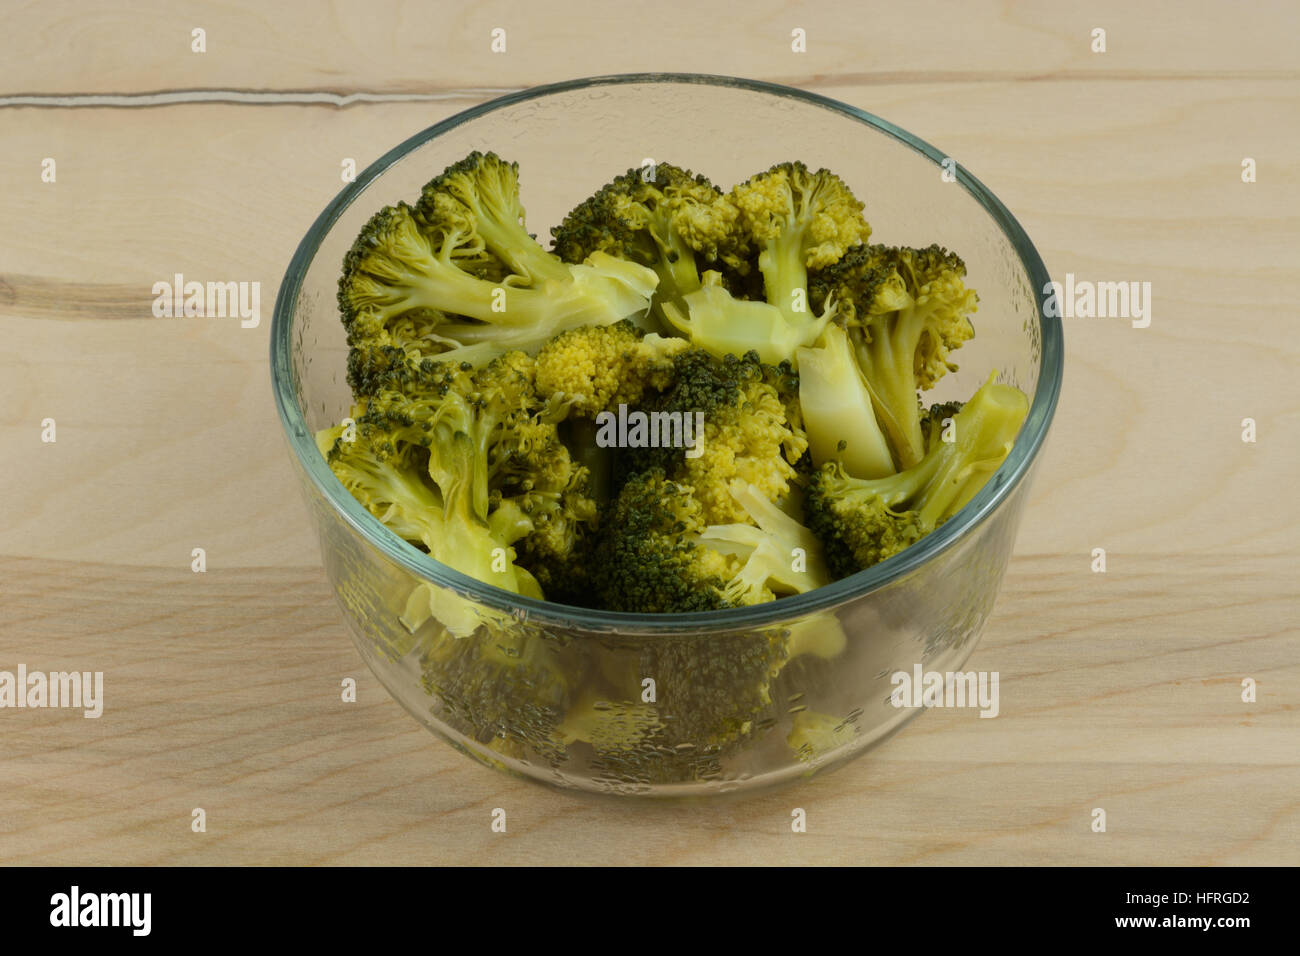 Steamed broccoli in glass bowl - Stock Image